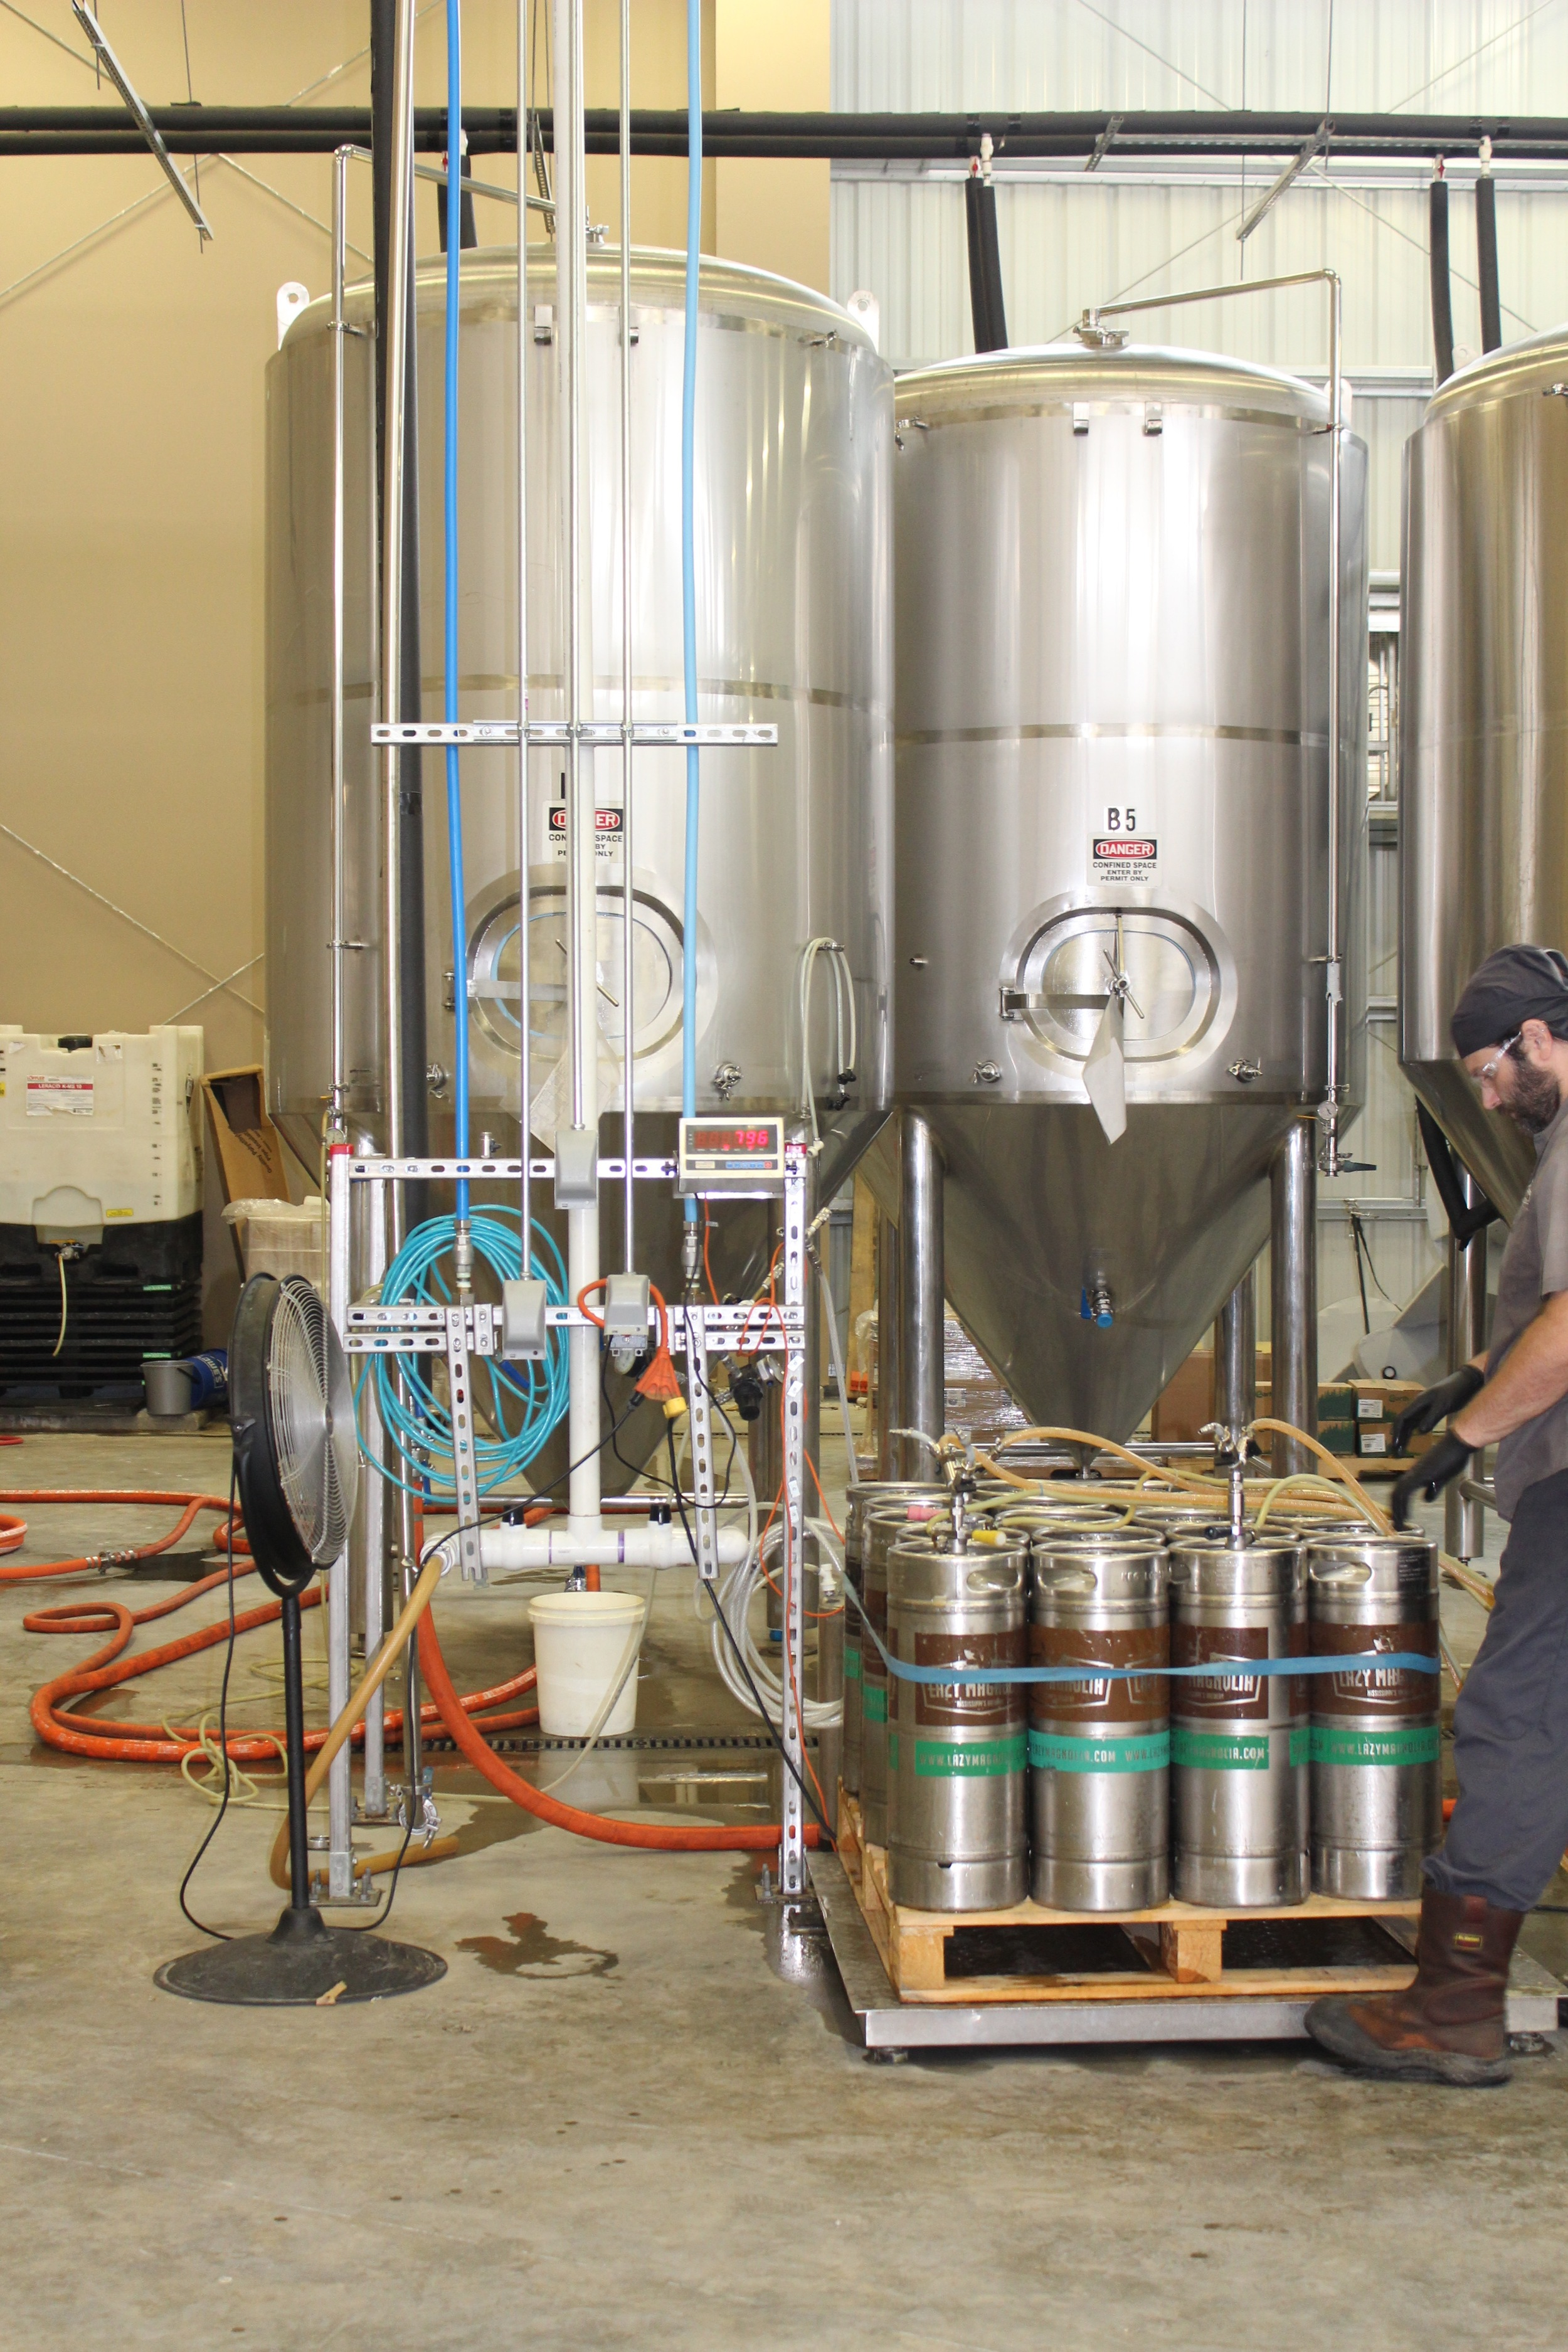 Filling up pony kegs at Lazy Magnolia Brewing Company in Kiln, Mississippi